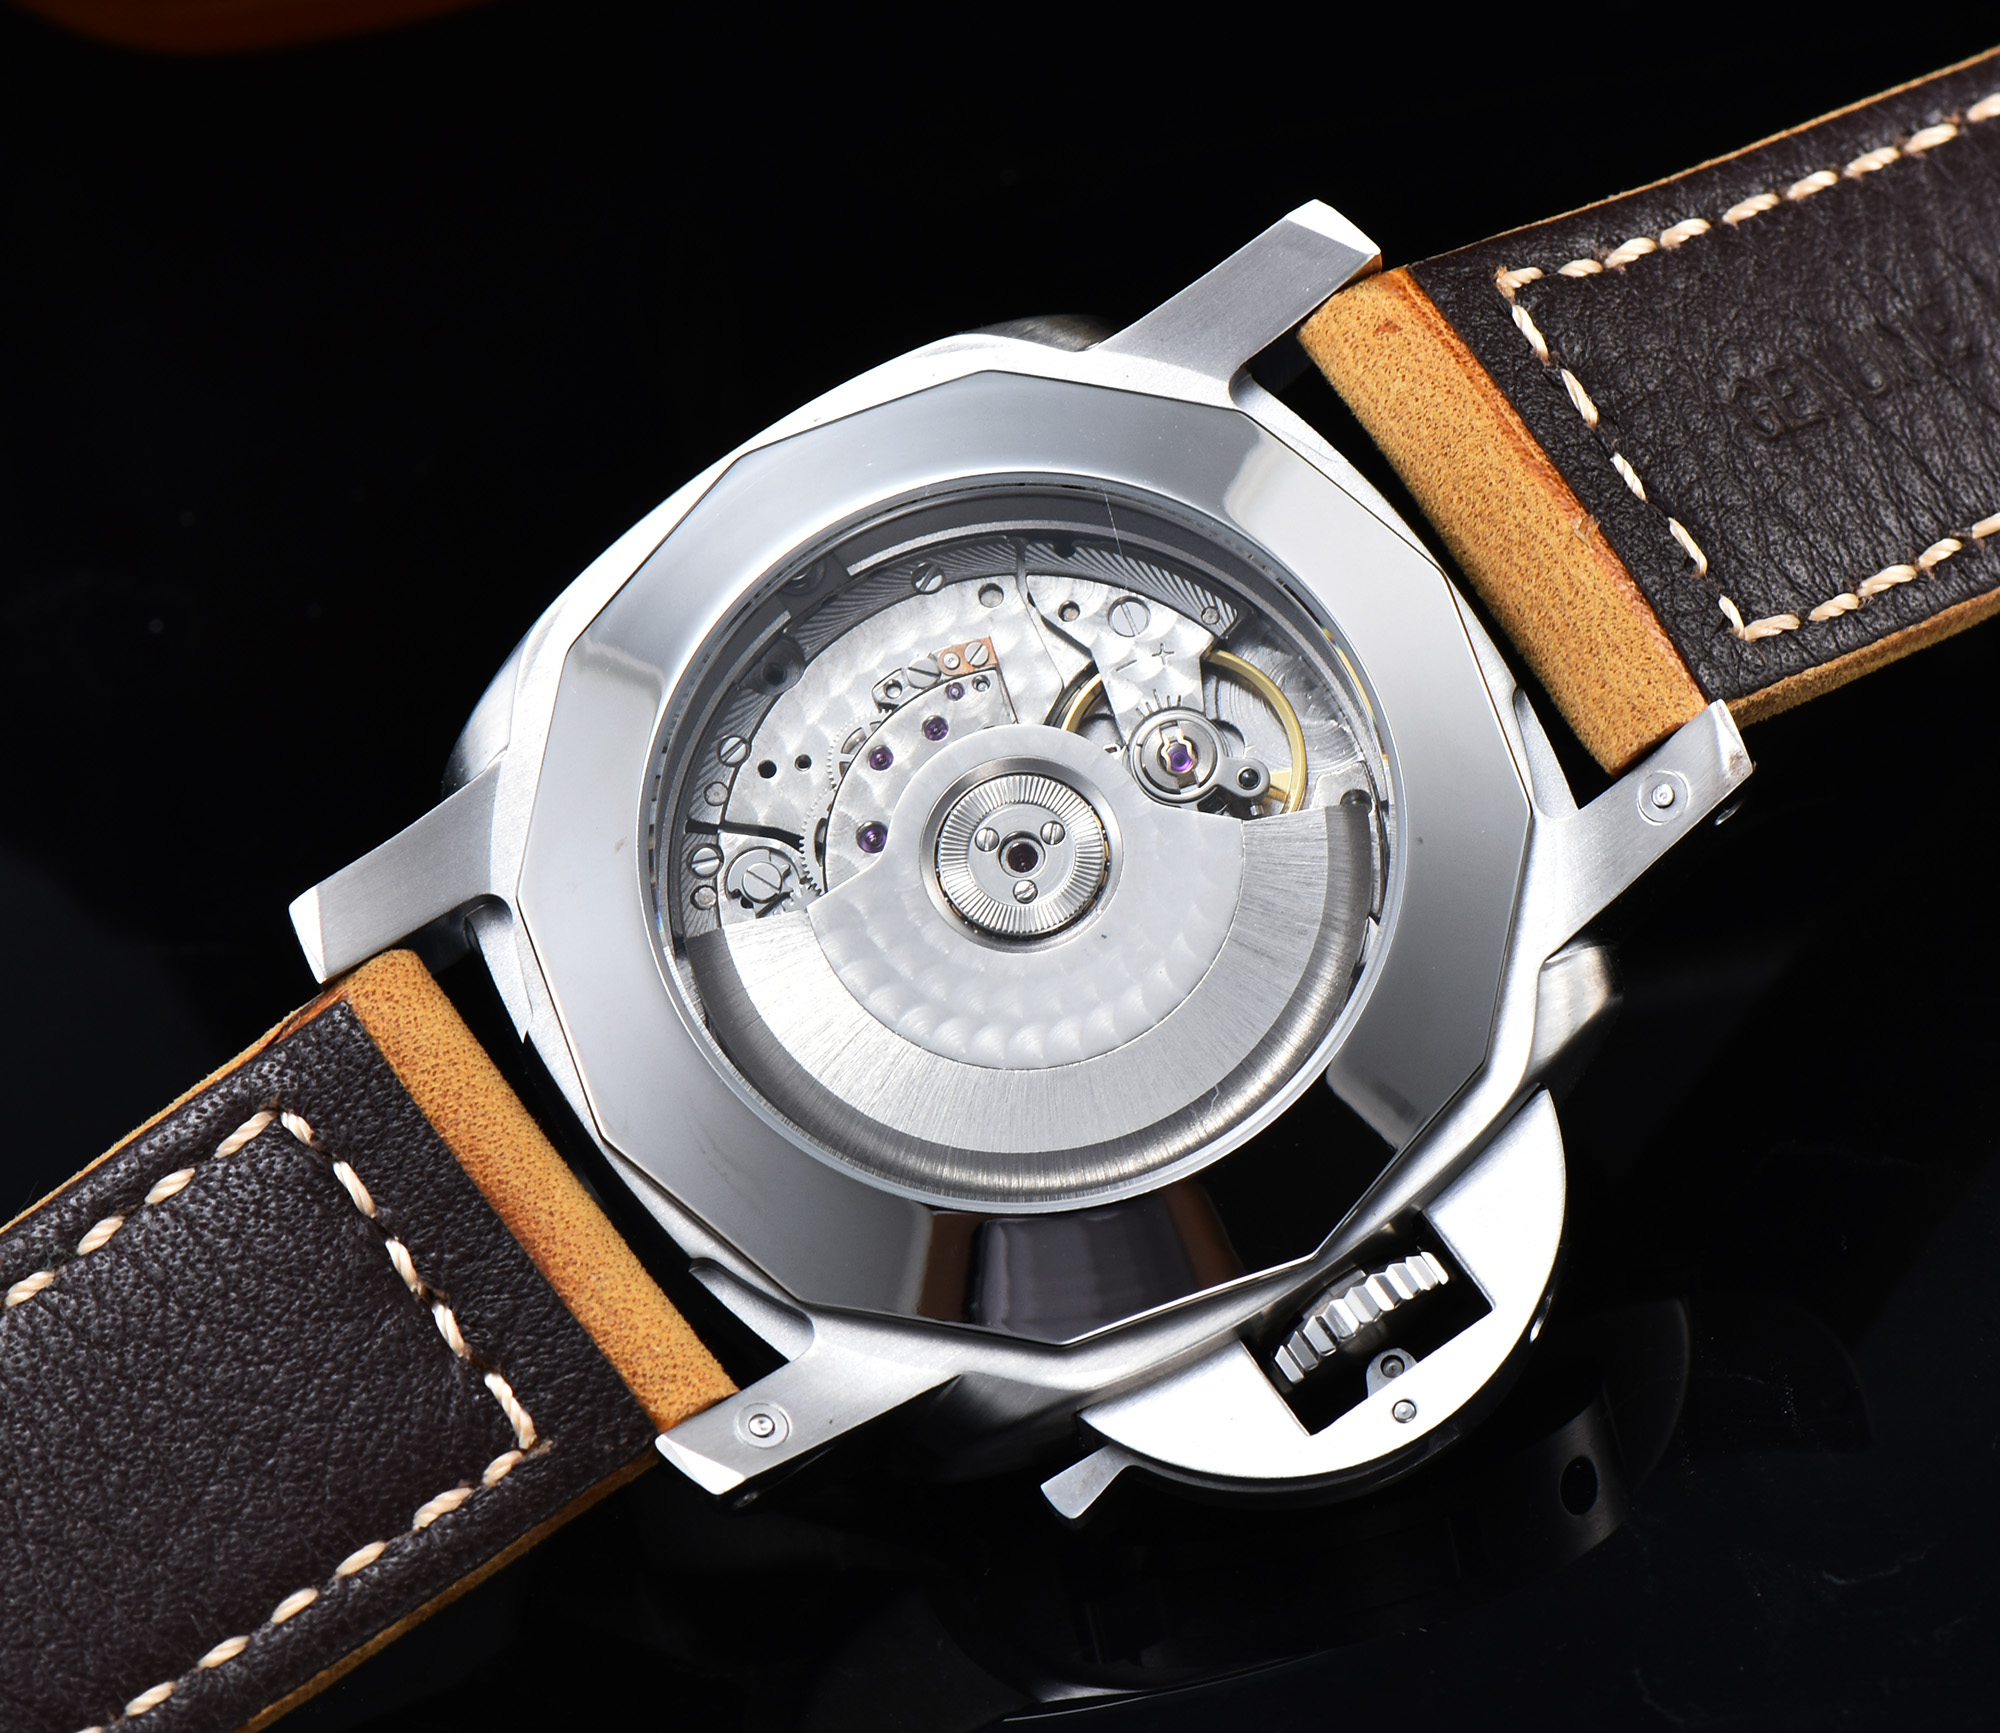 Watch 44mm silver stainless steel case seagull automatic movement military leather strap date a3 in Mechanical Watches from Watches